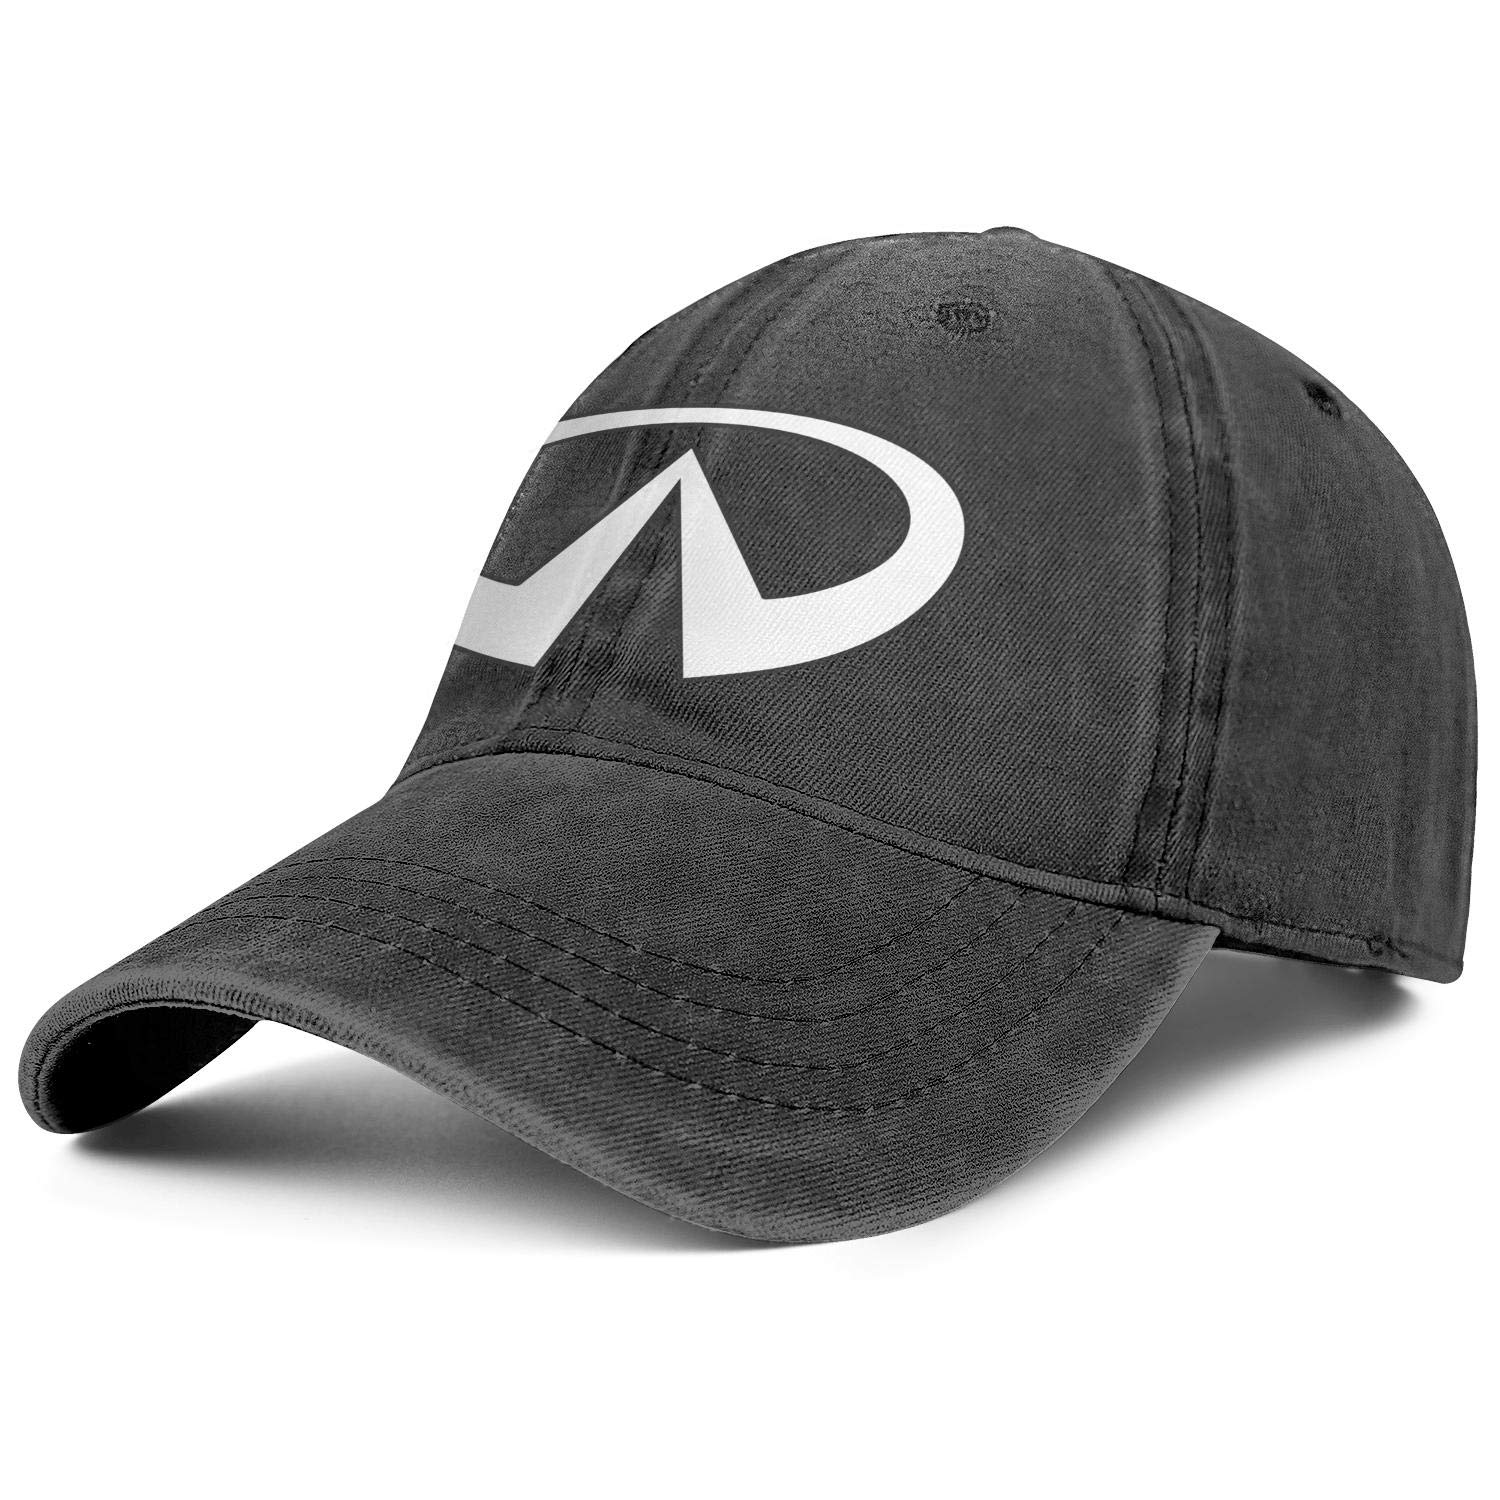 Denim Caps Ball Cool Infiniti-National-flag-cars-for-sale-01-01 Baseball Cap Fashion Popular Hats